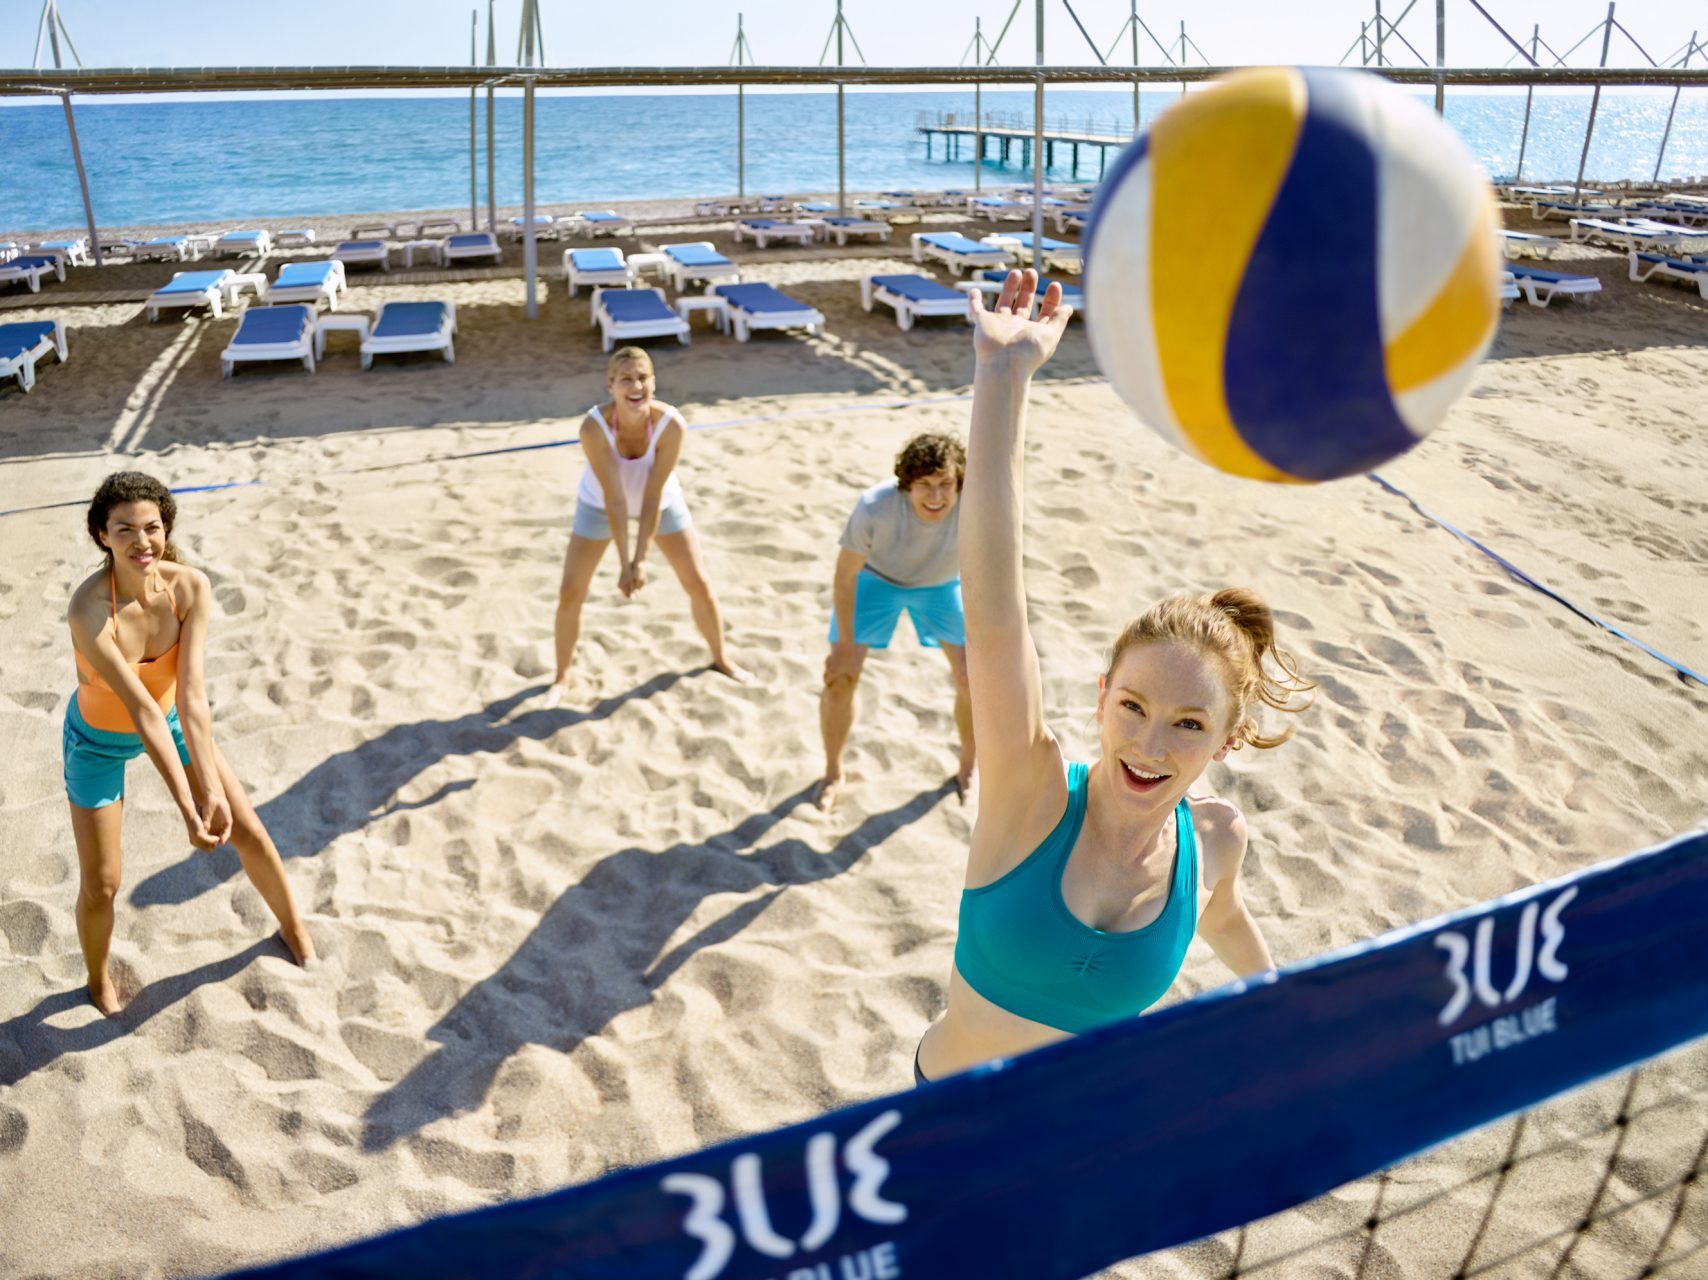 tui_blue_palm_garden_strand_beach_volleyball_cf130289_002